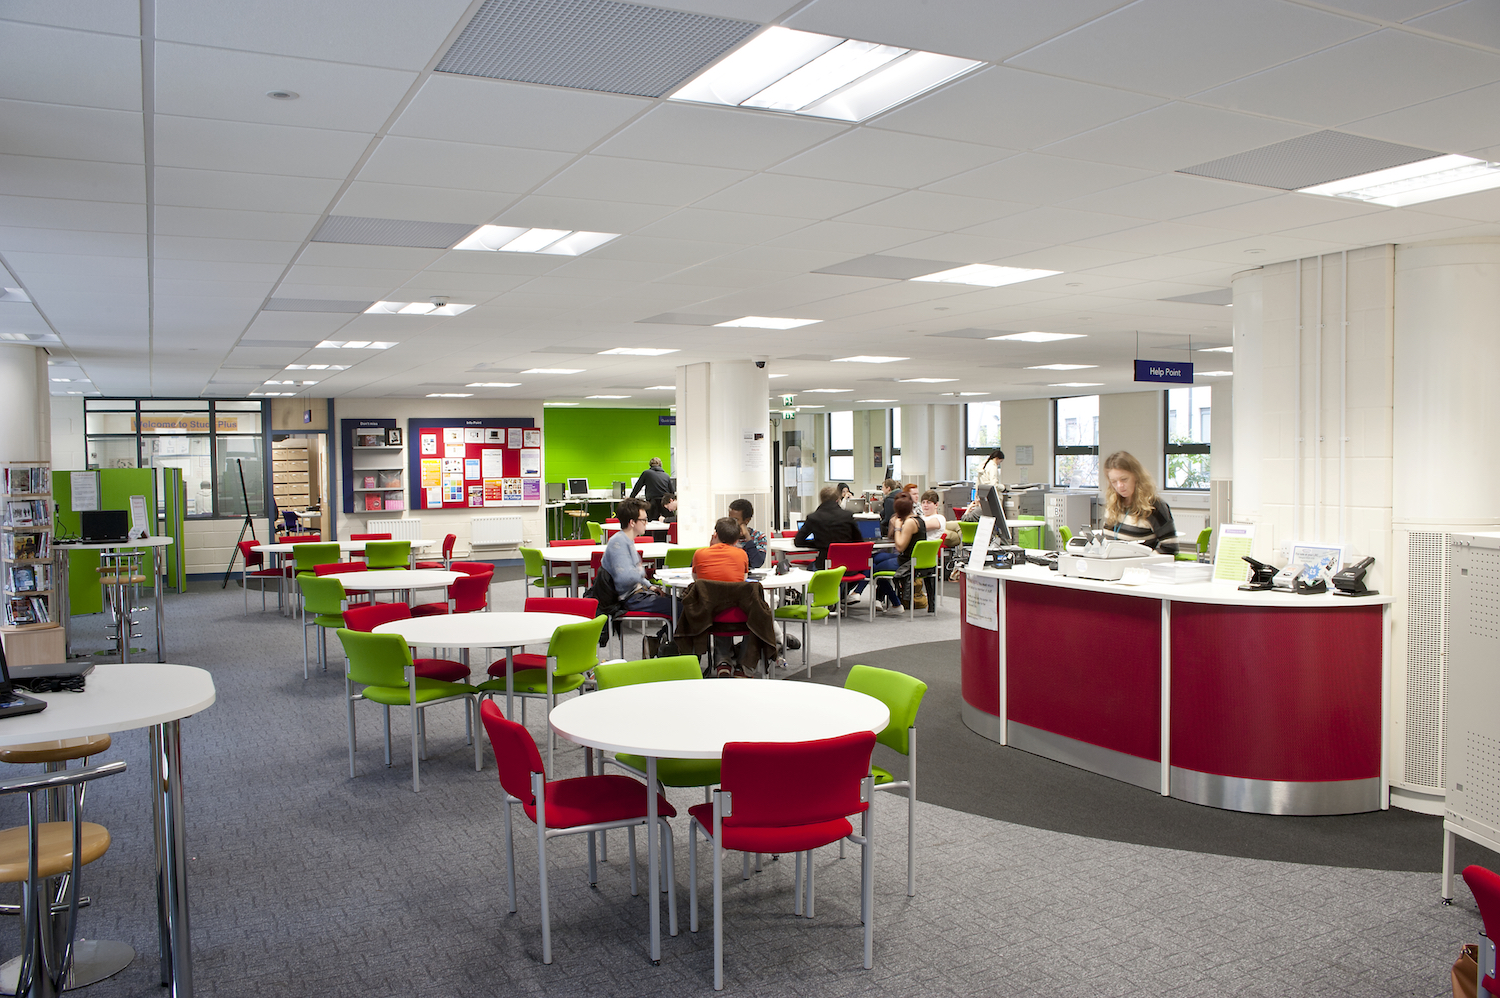 Bristol City College Moduflex Ltd